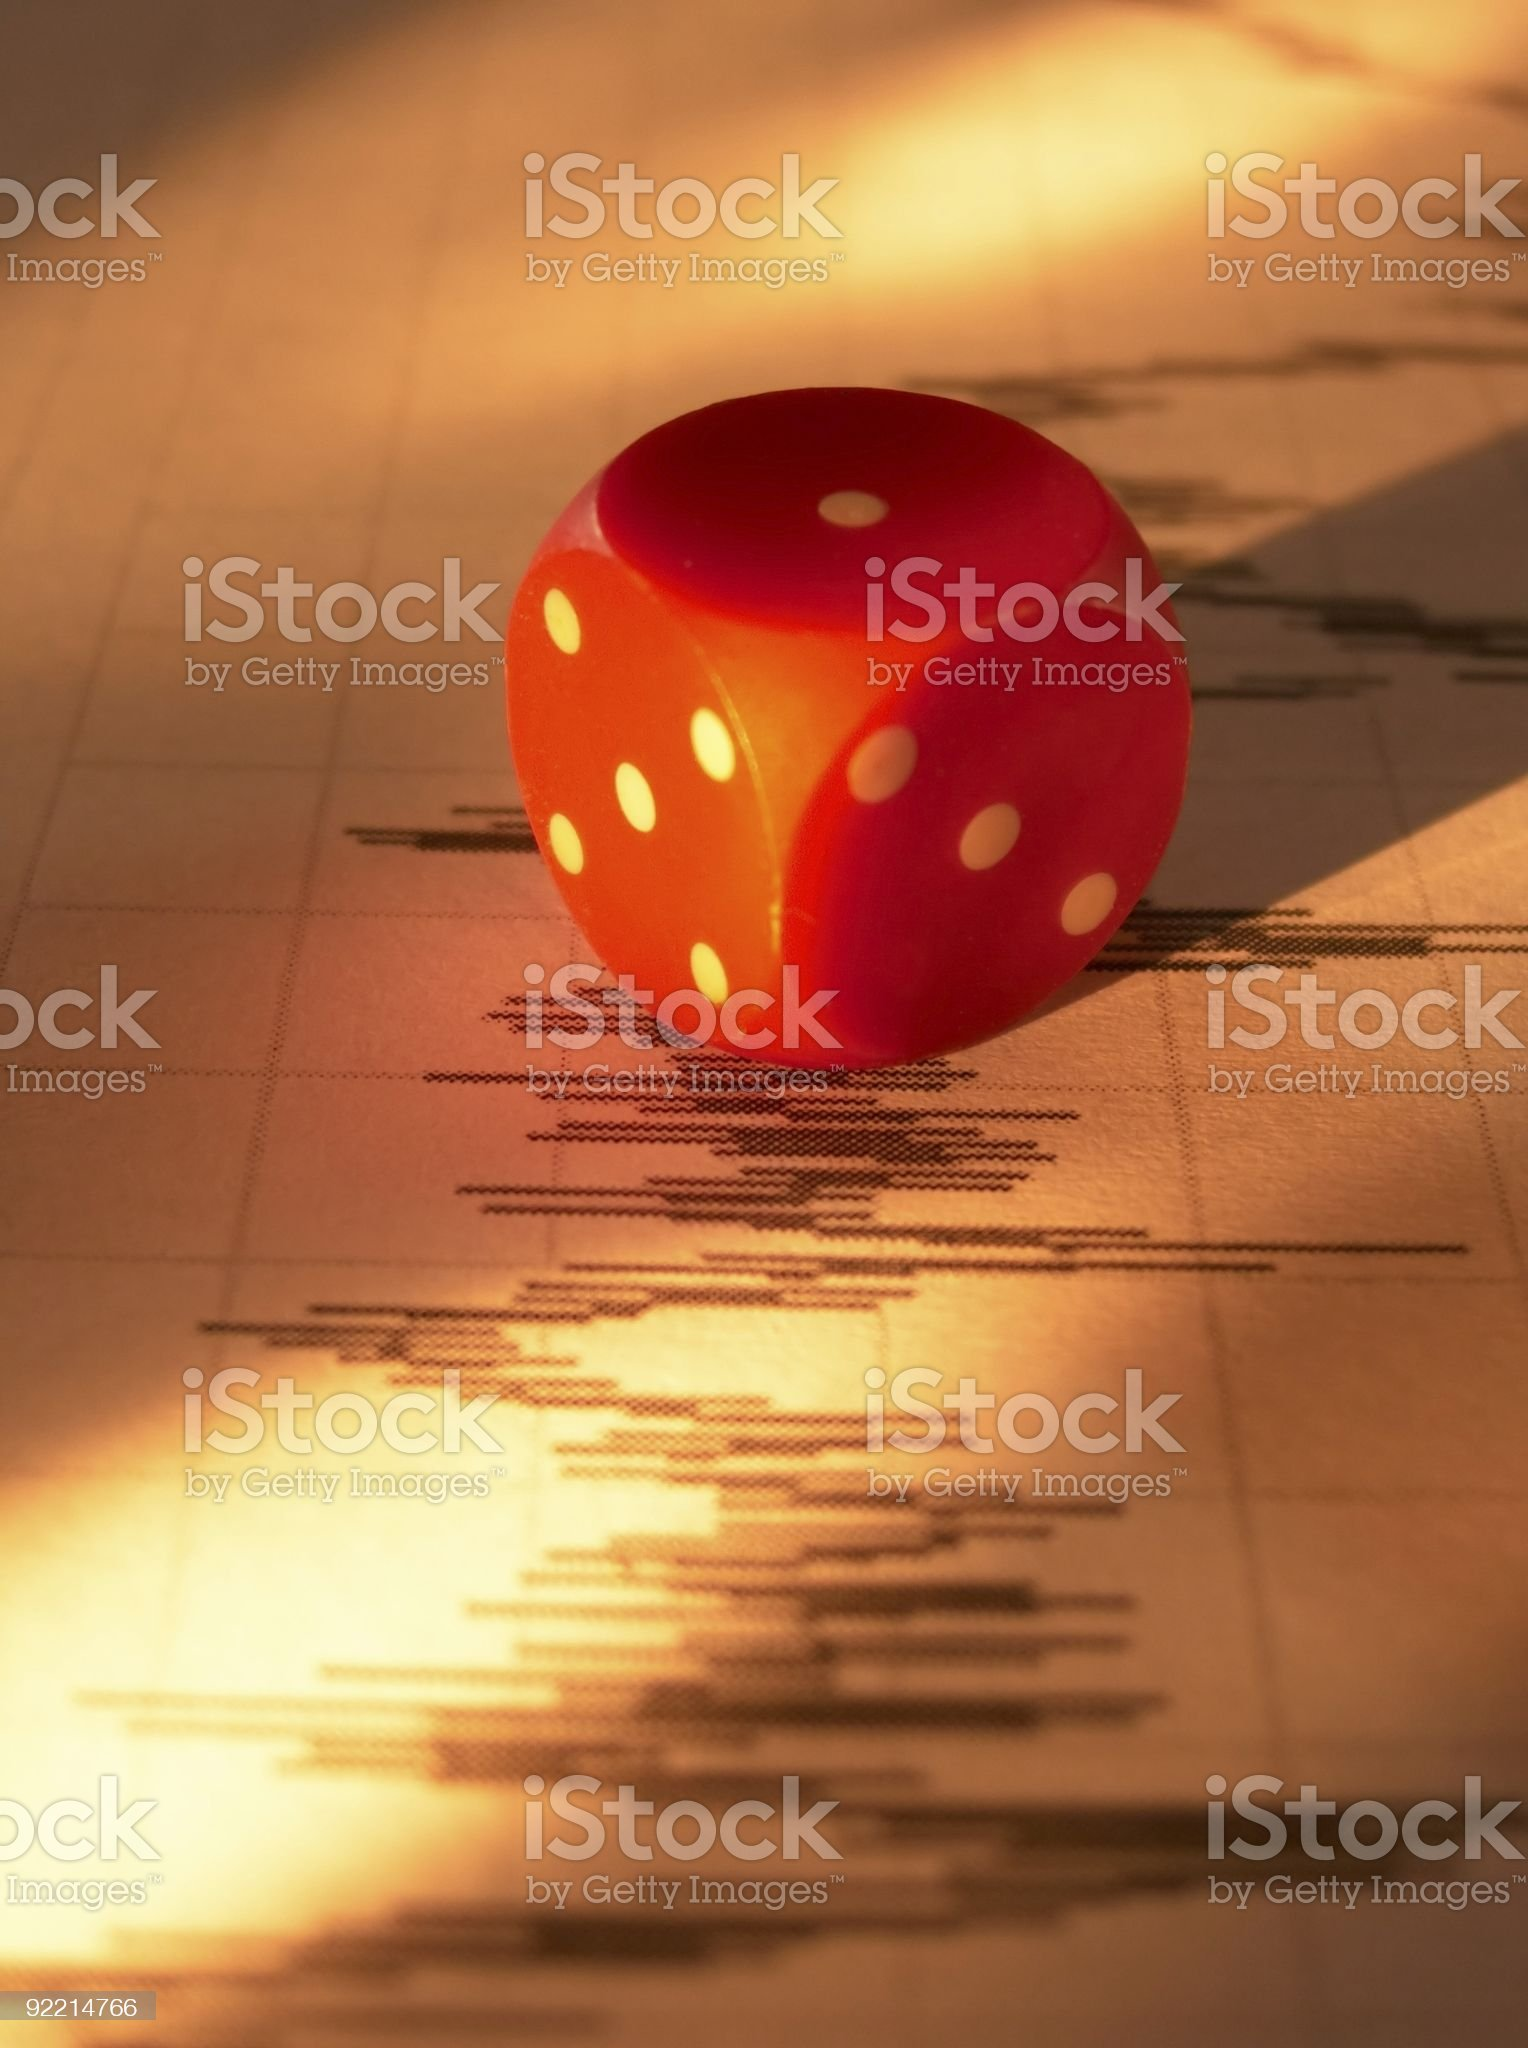 Dice on stock page royalty-free stock photo